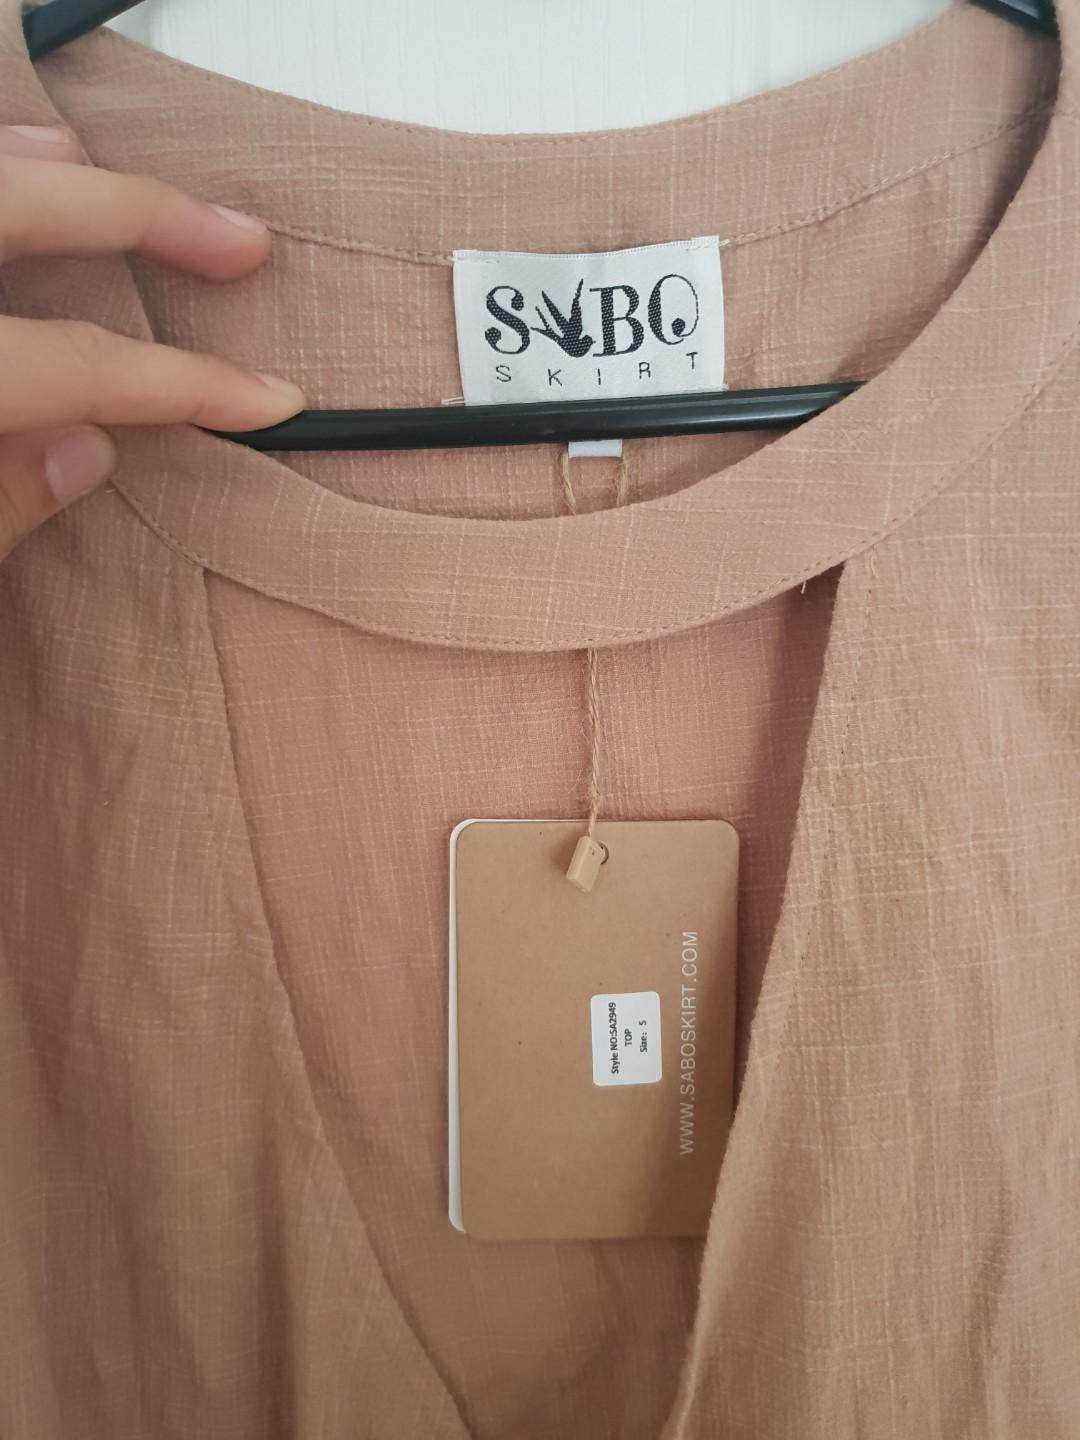 Sabo Skirt tan tshirt